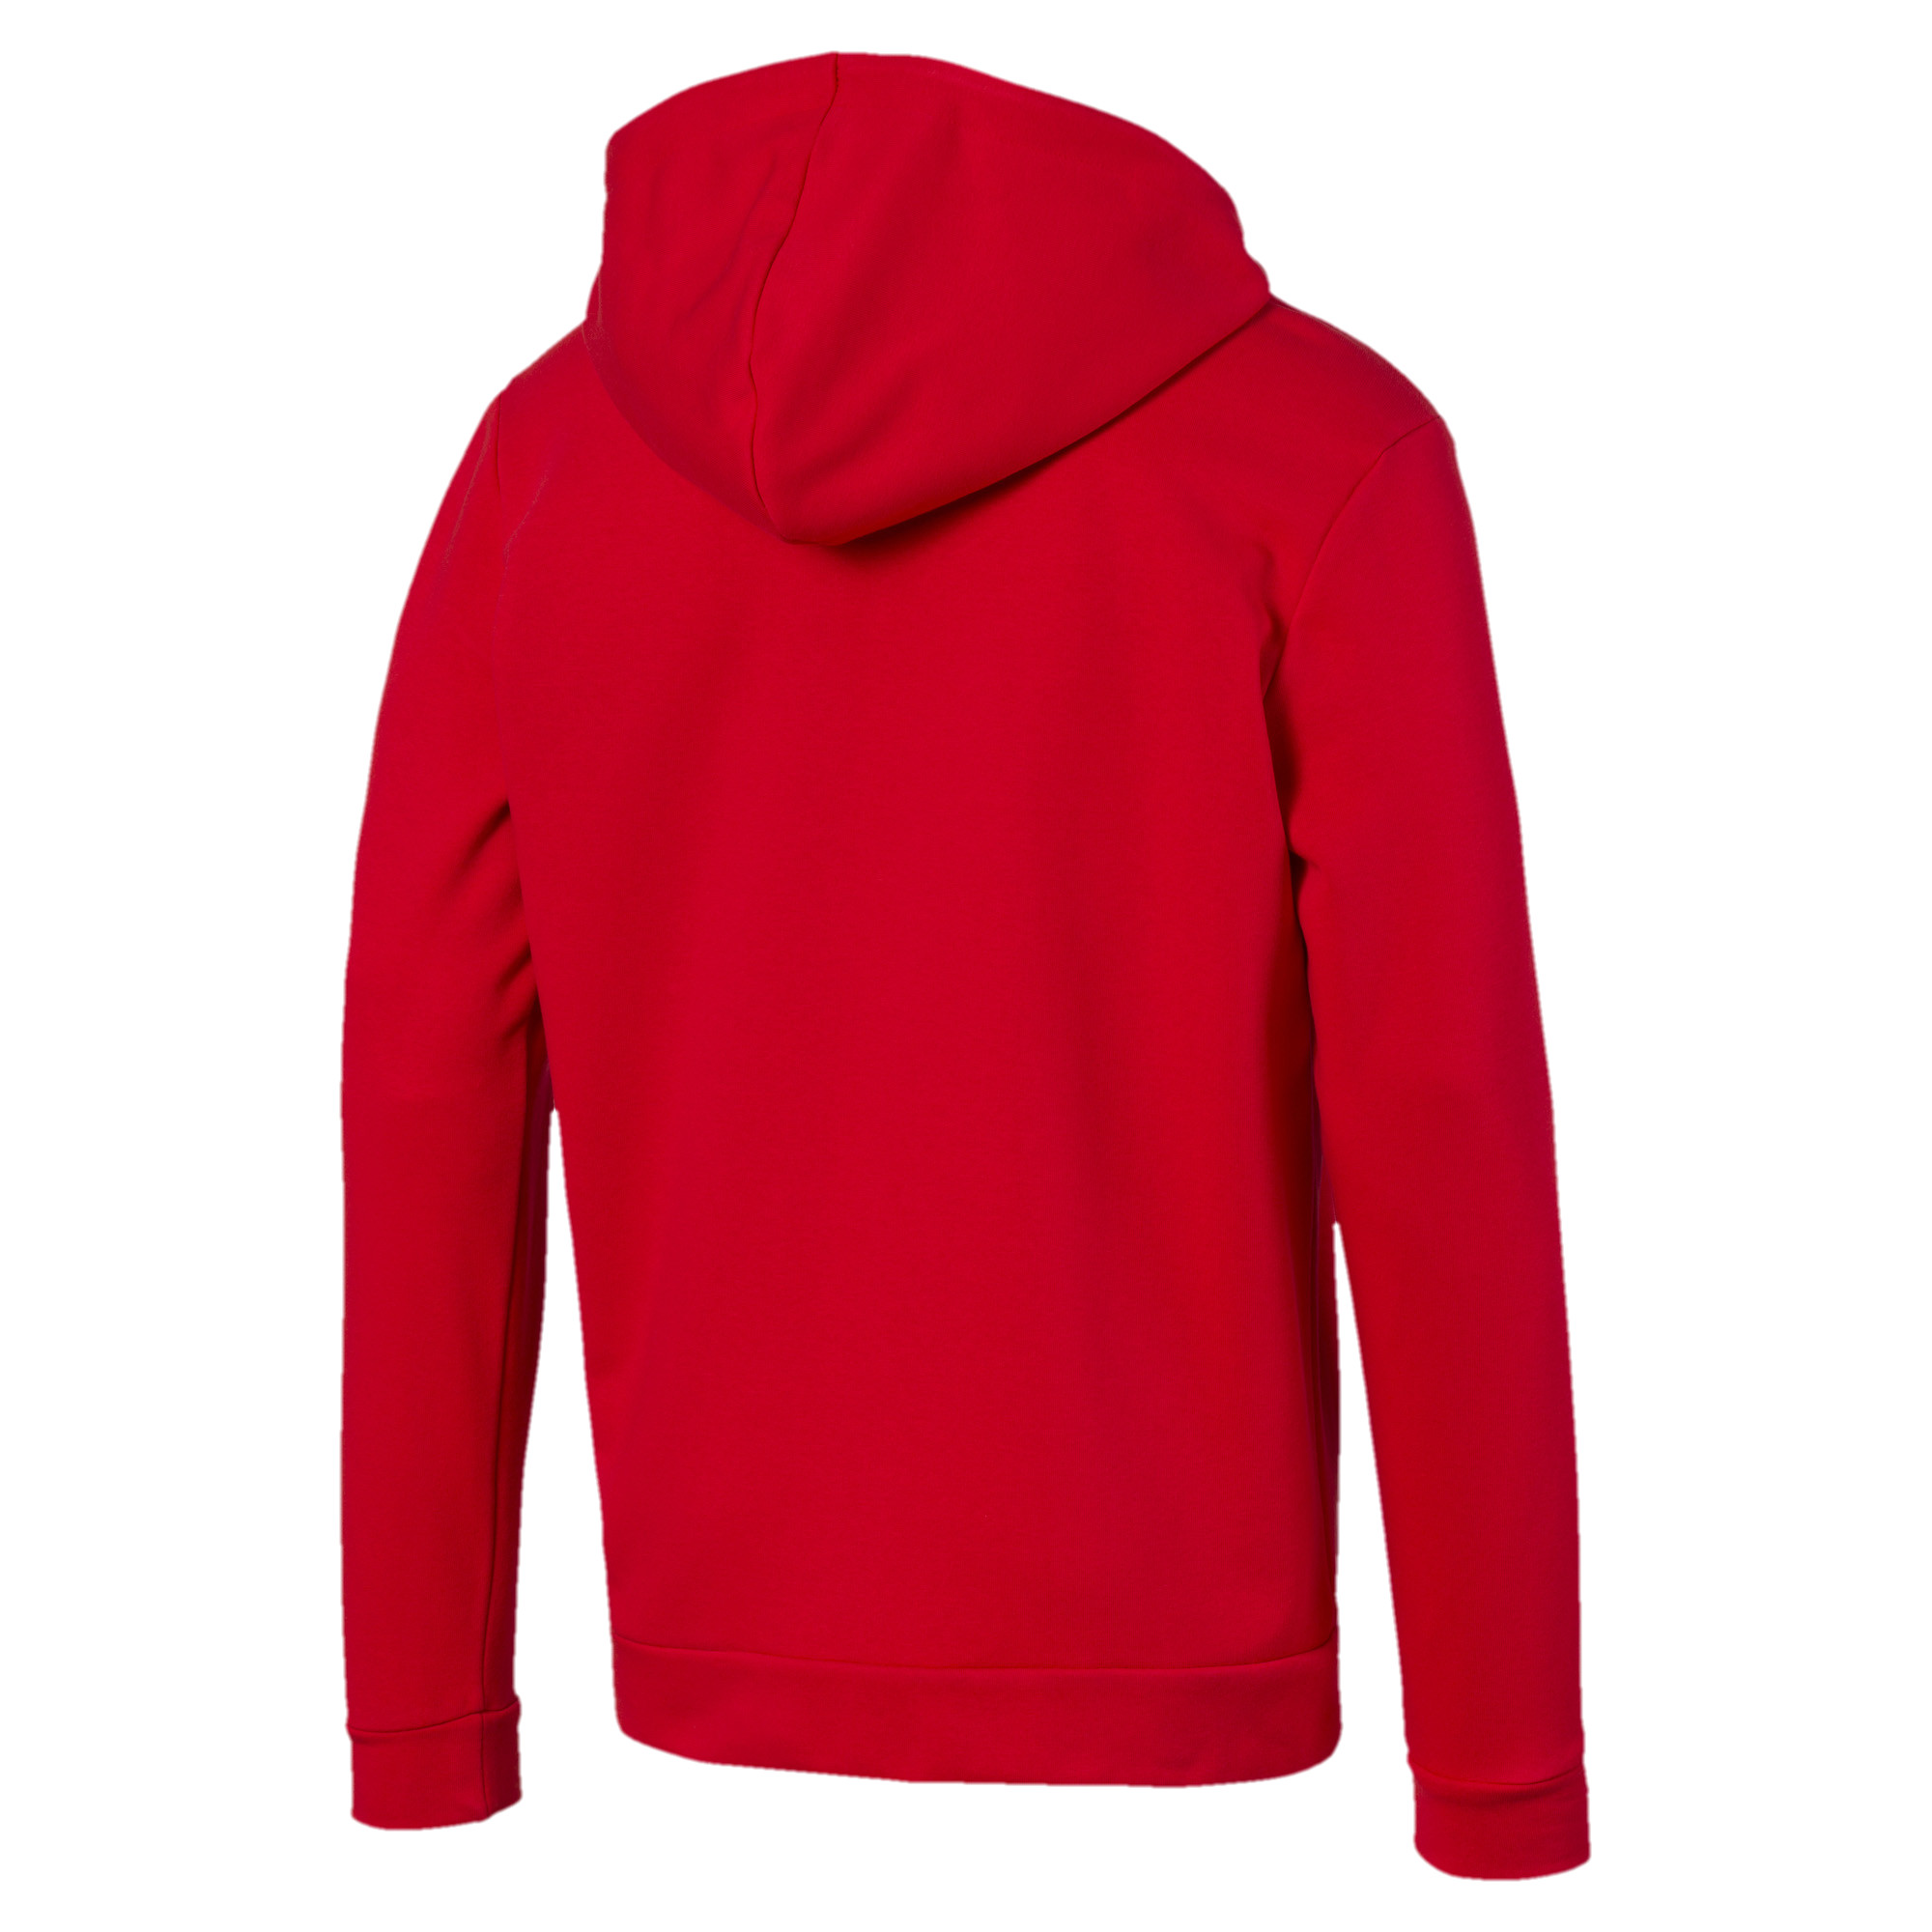 PUMA-Amplified-Men-039-s-Hooded-Jacket-Men-Sweat-Basics thumbnail 22